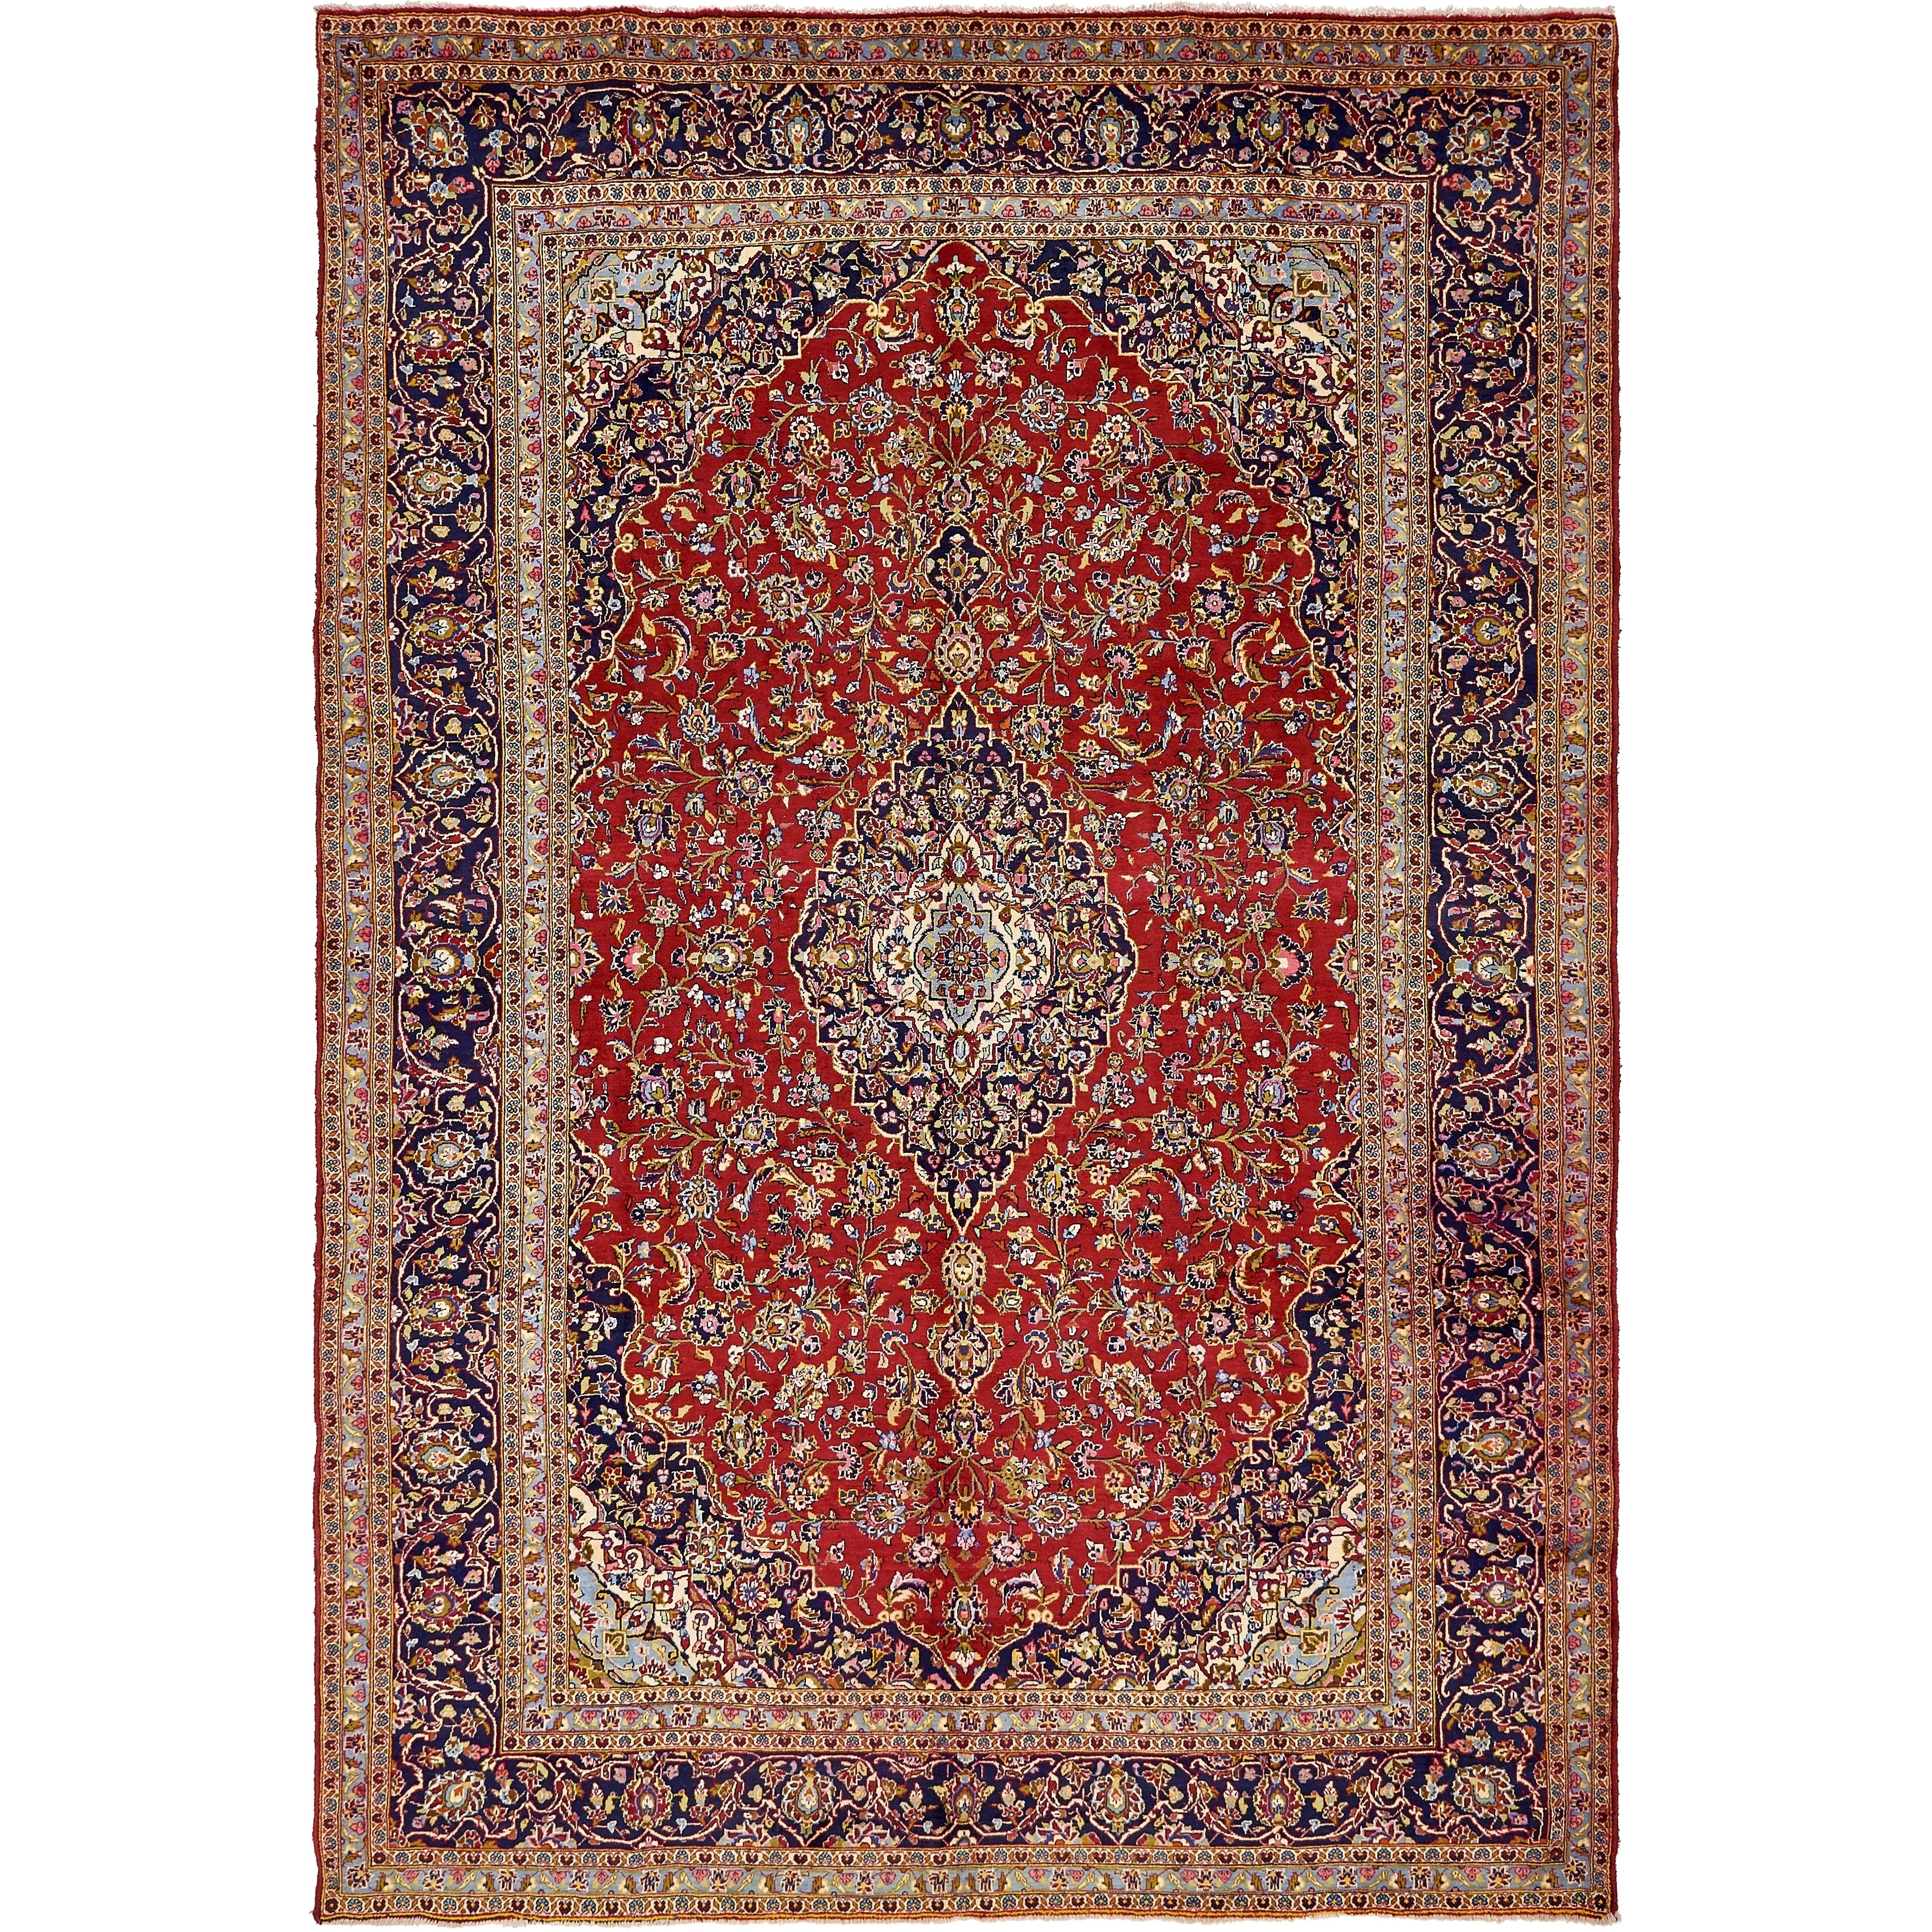 Hand Knotted Kashan Semi Antique Wool Area Rug - 9 7 x 13 6 (Red - 9 7 x 13 6)